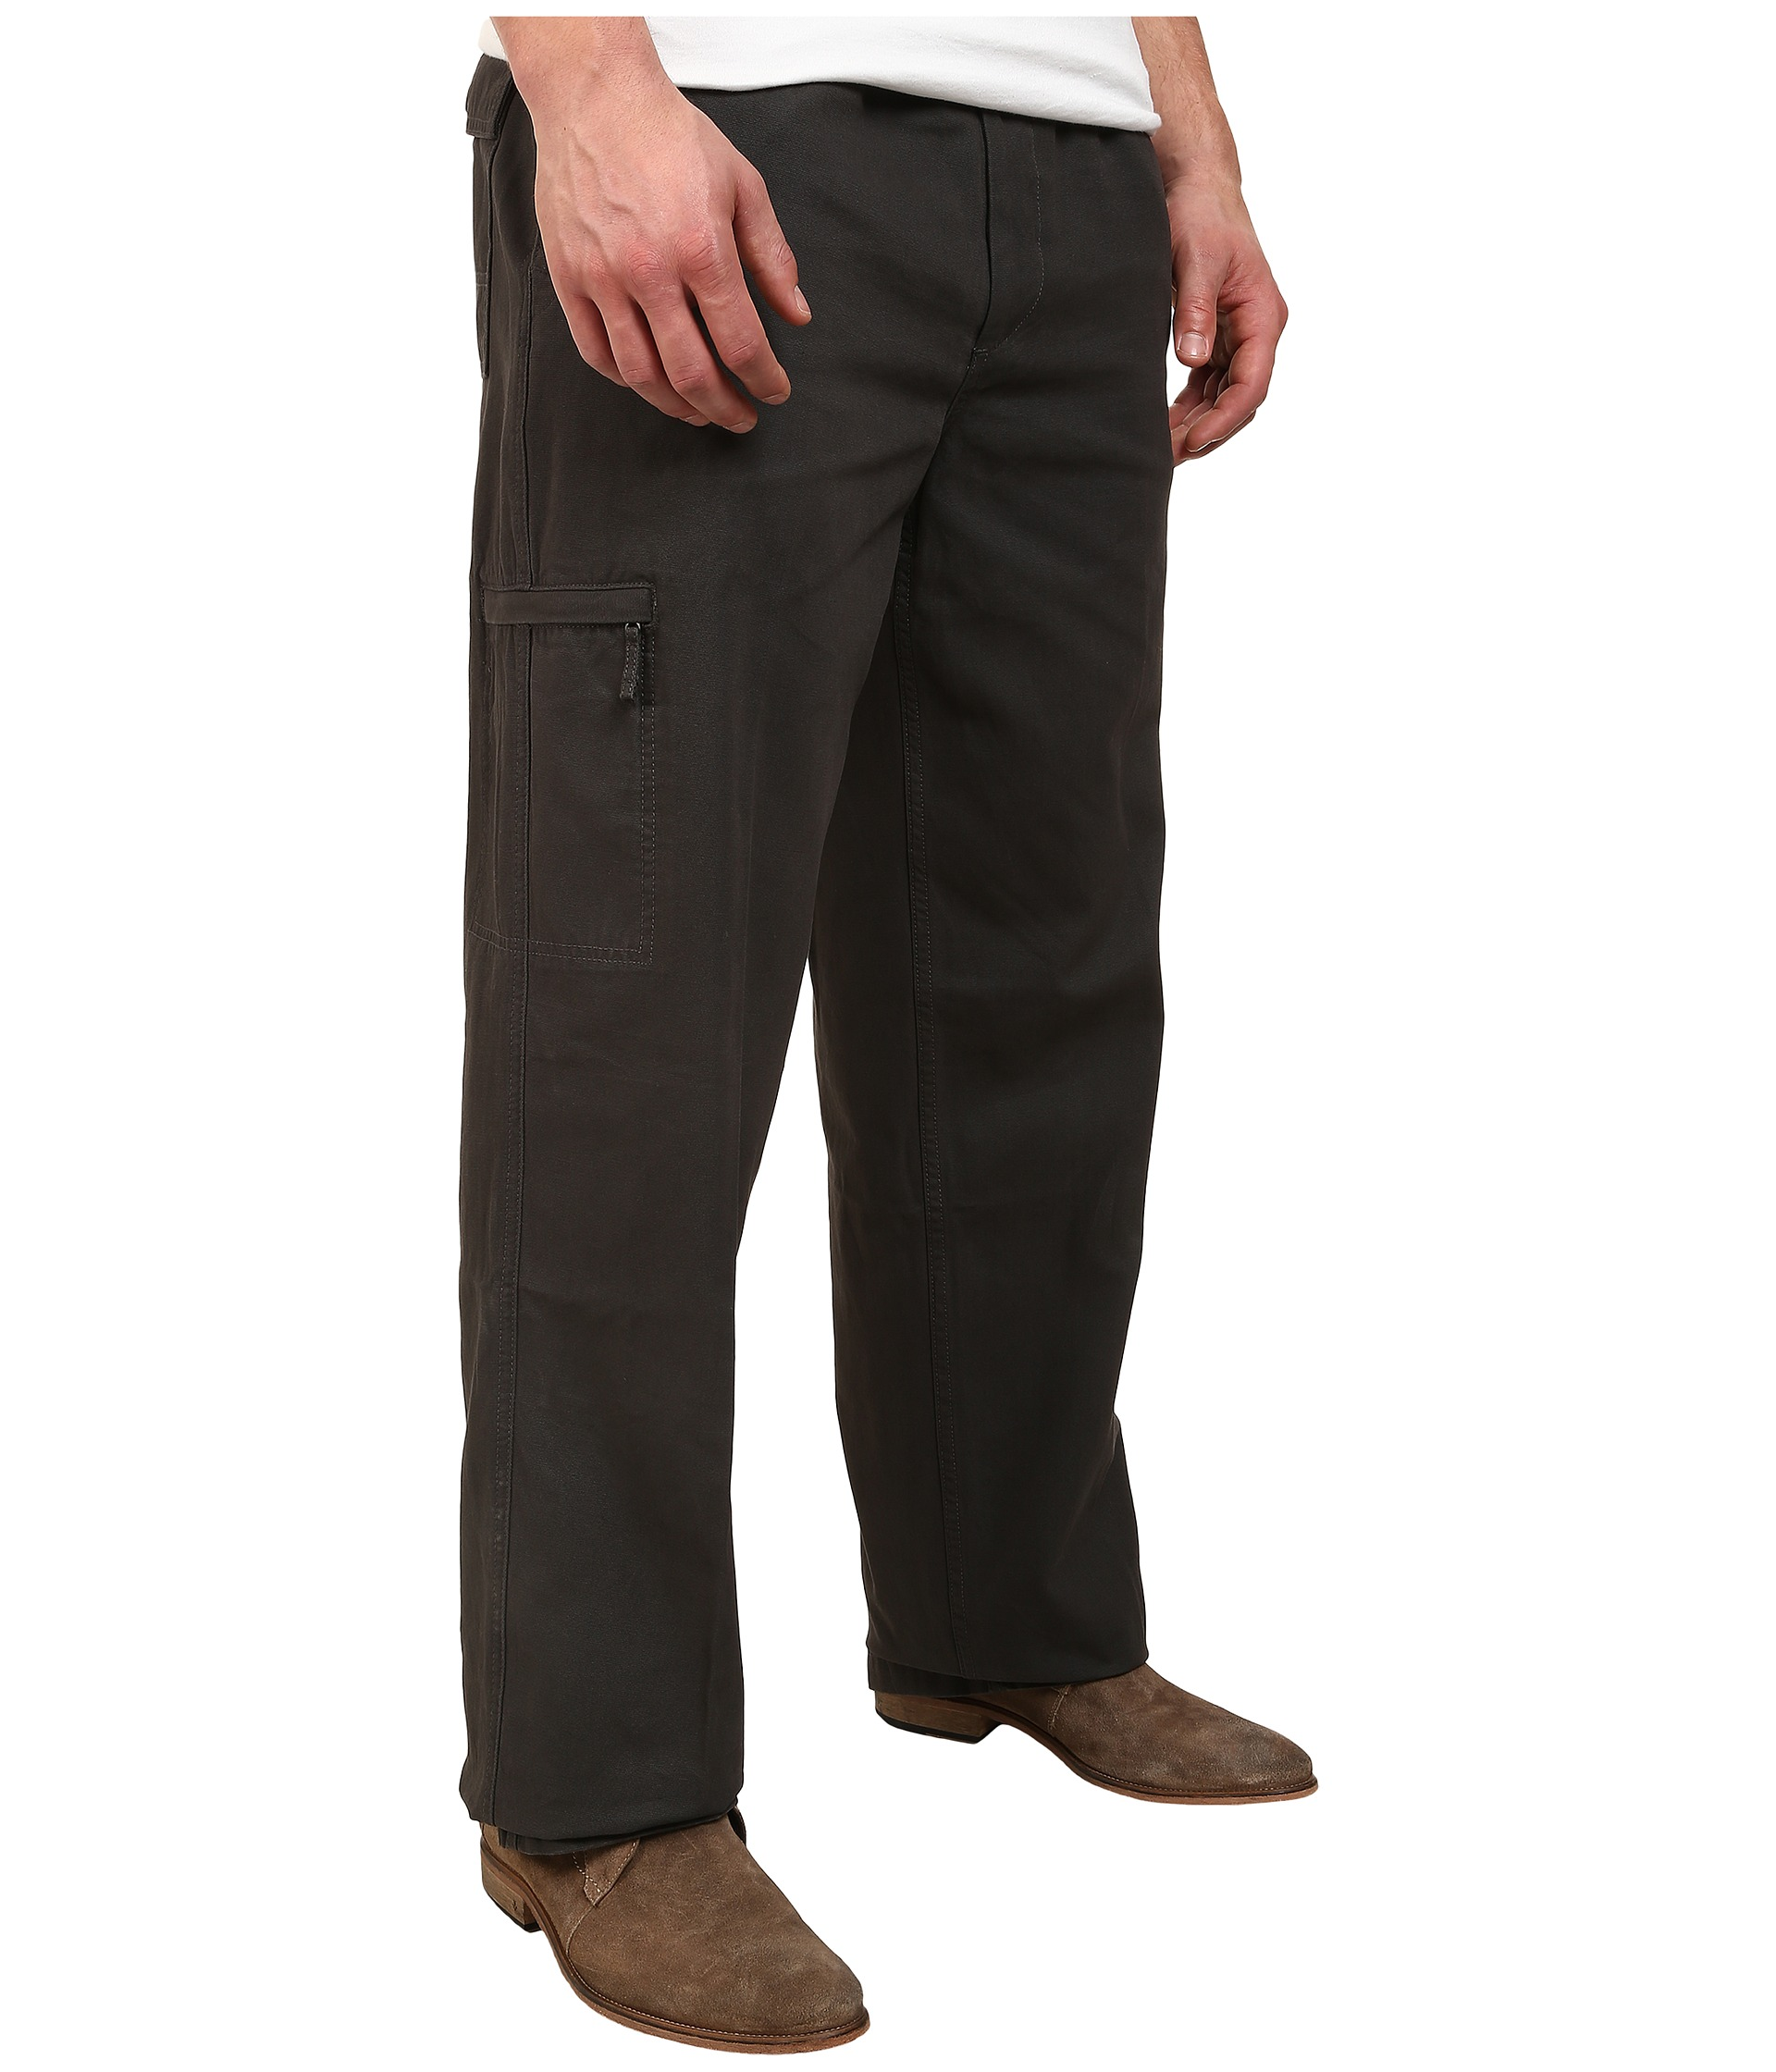 Free shipping BOTH ways on big tall cargo pants, from our vast selection of styles. Fast delivery, and 24/7/ real-person service with a smile. Click or call